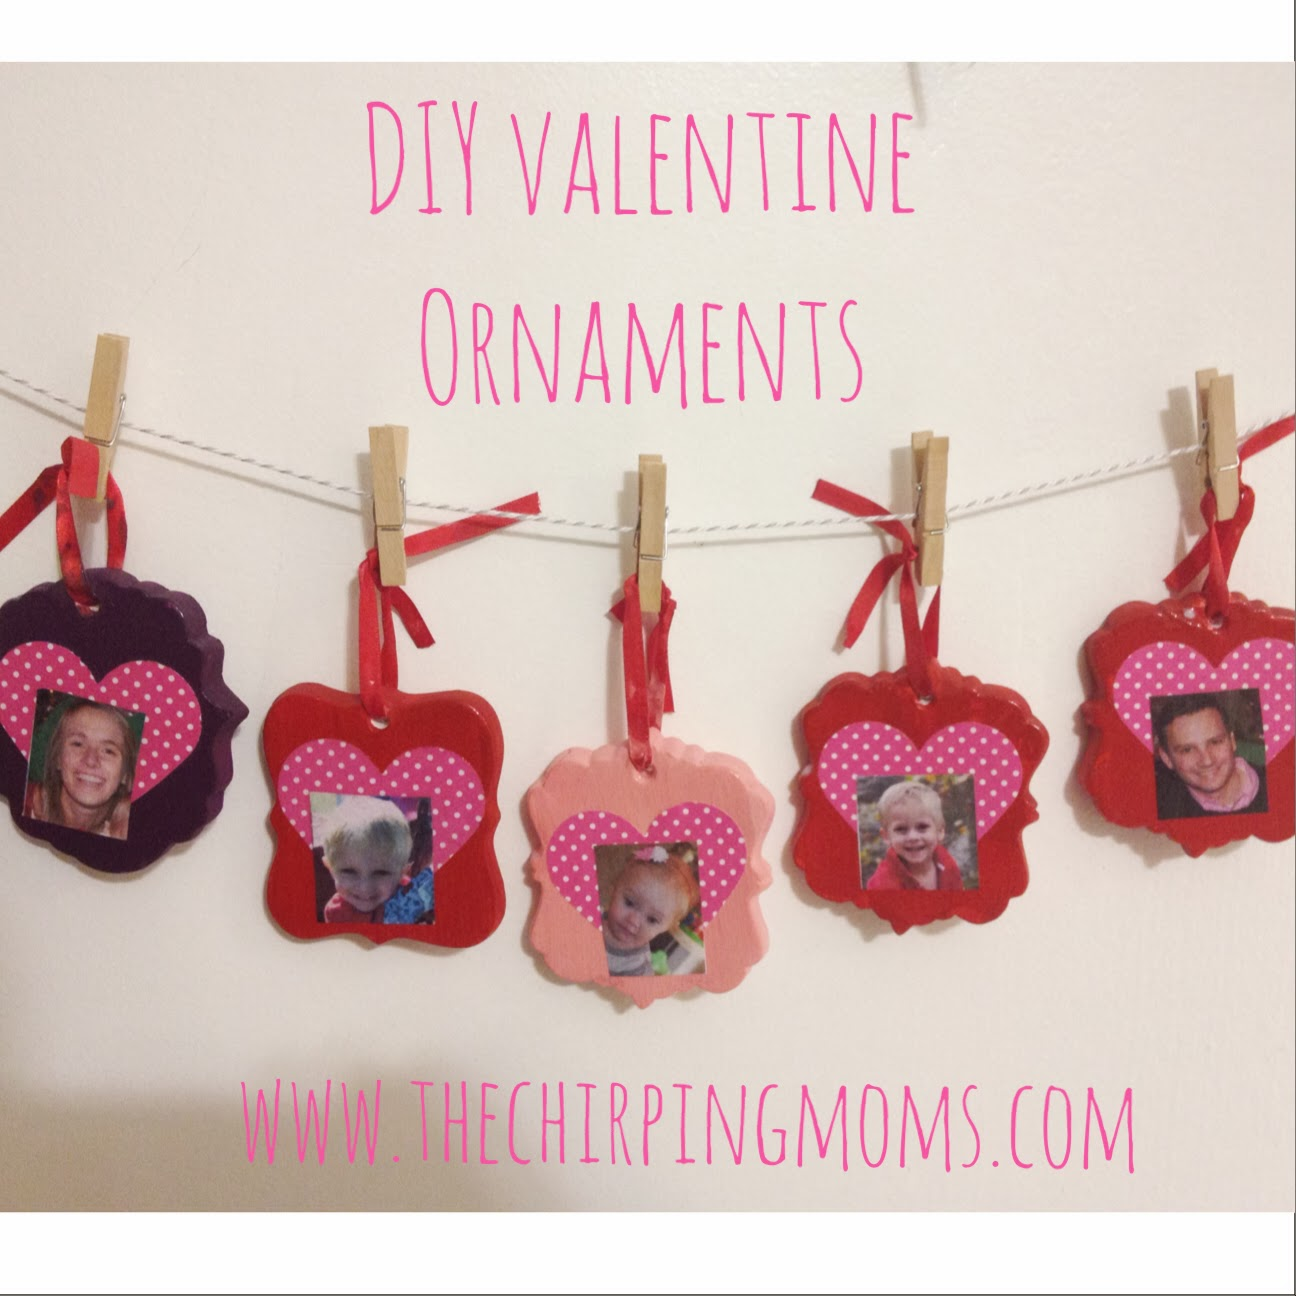 DIY Valentine Family Ornaments